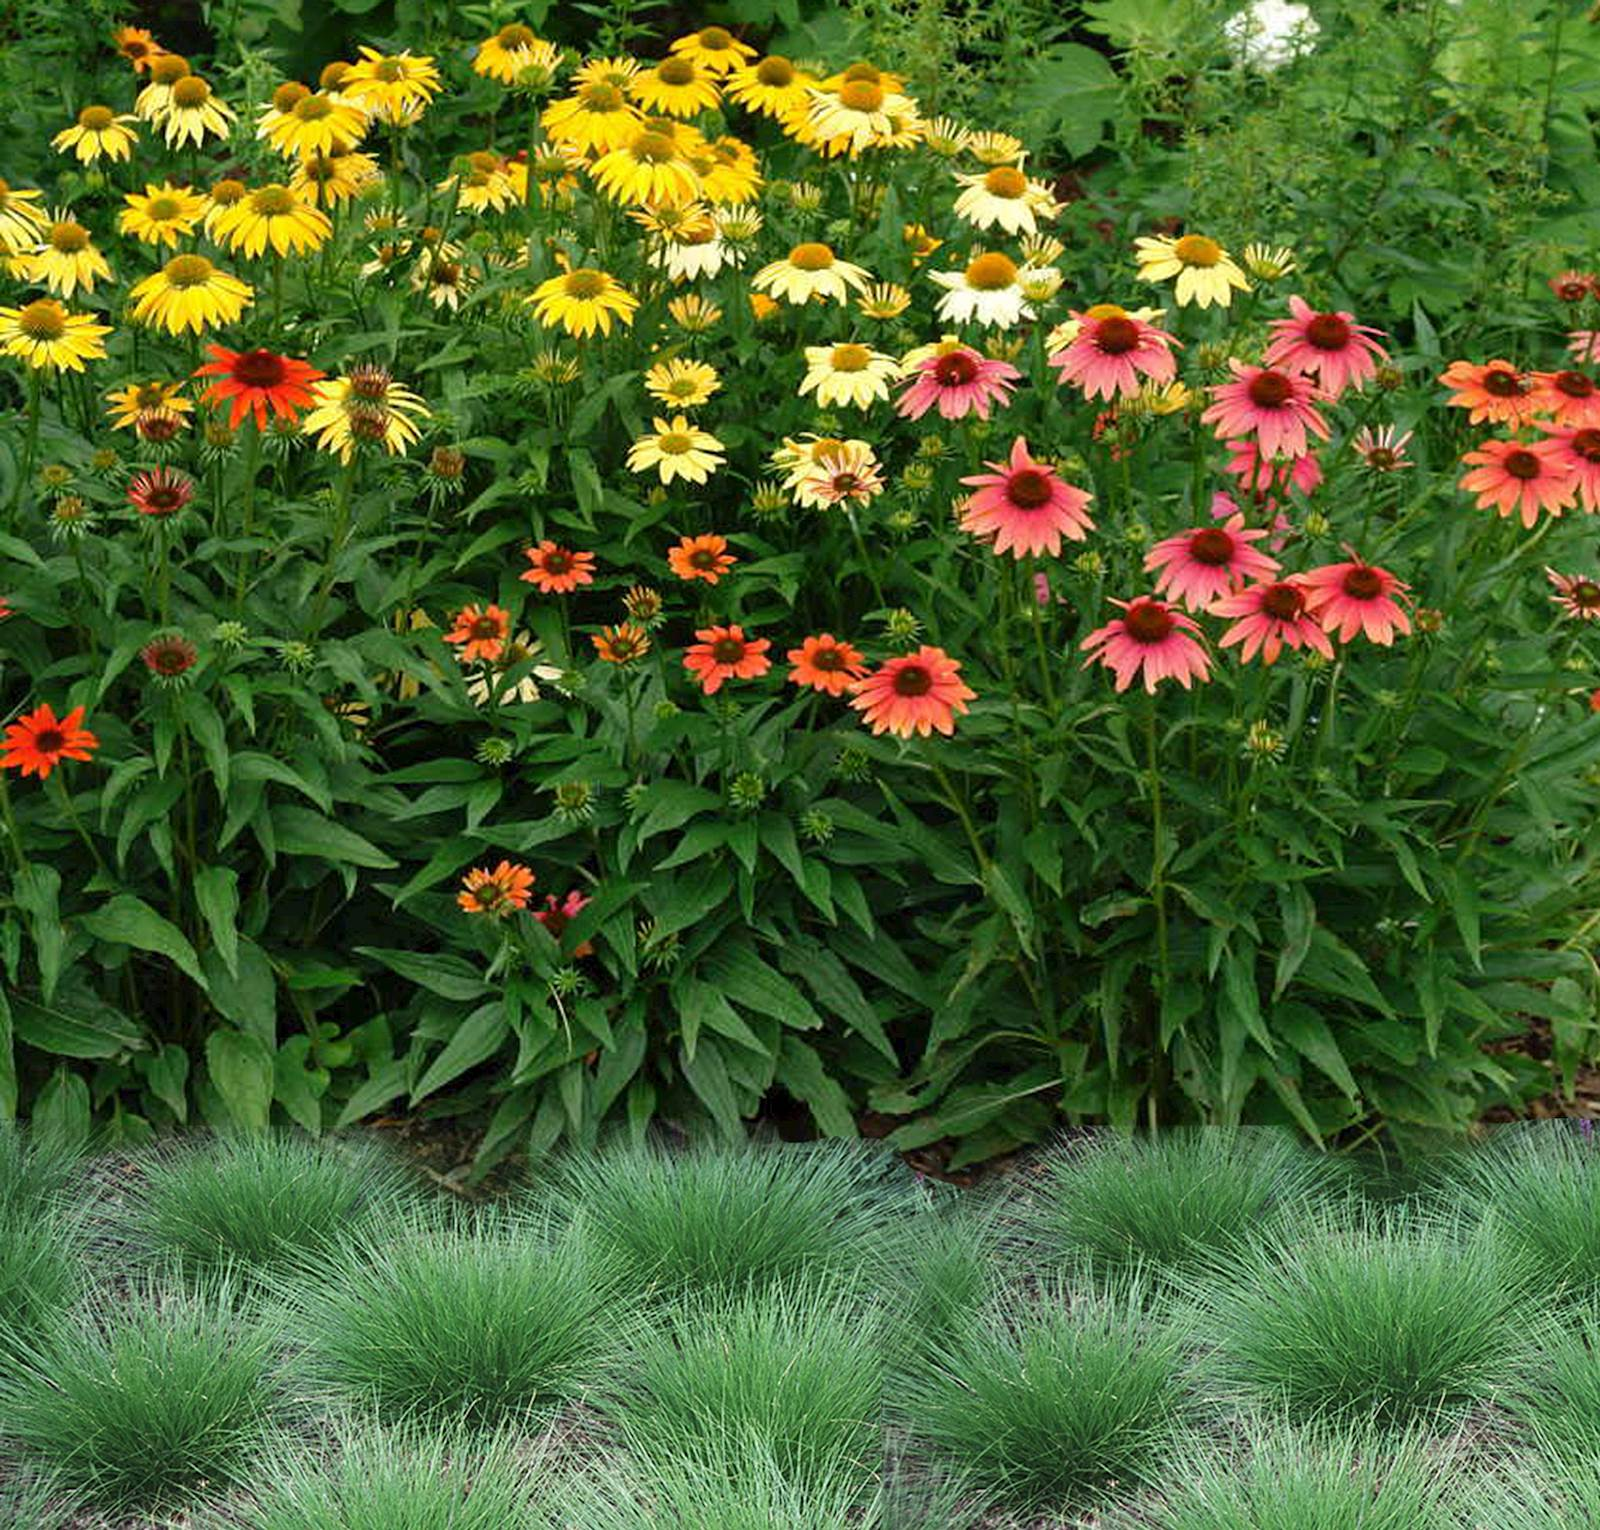 Coneflower and Dropseed work well together